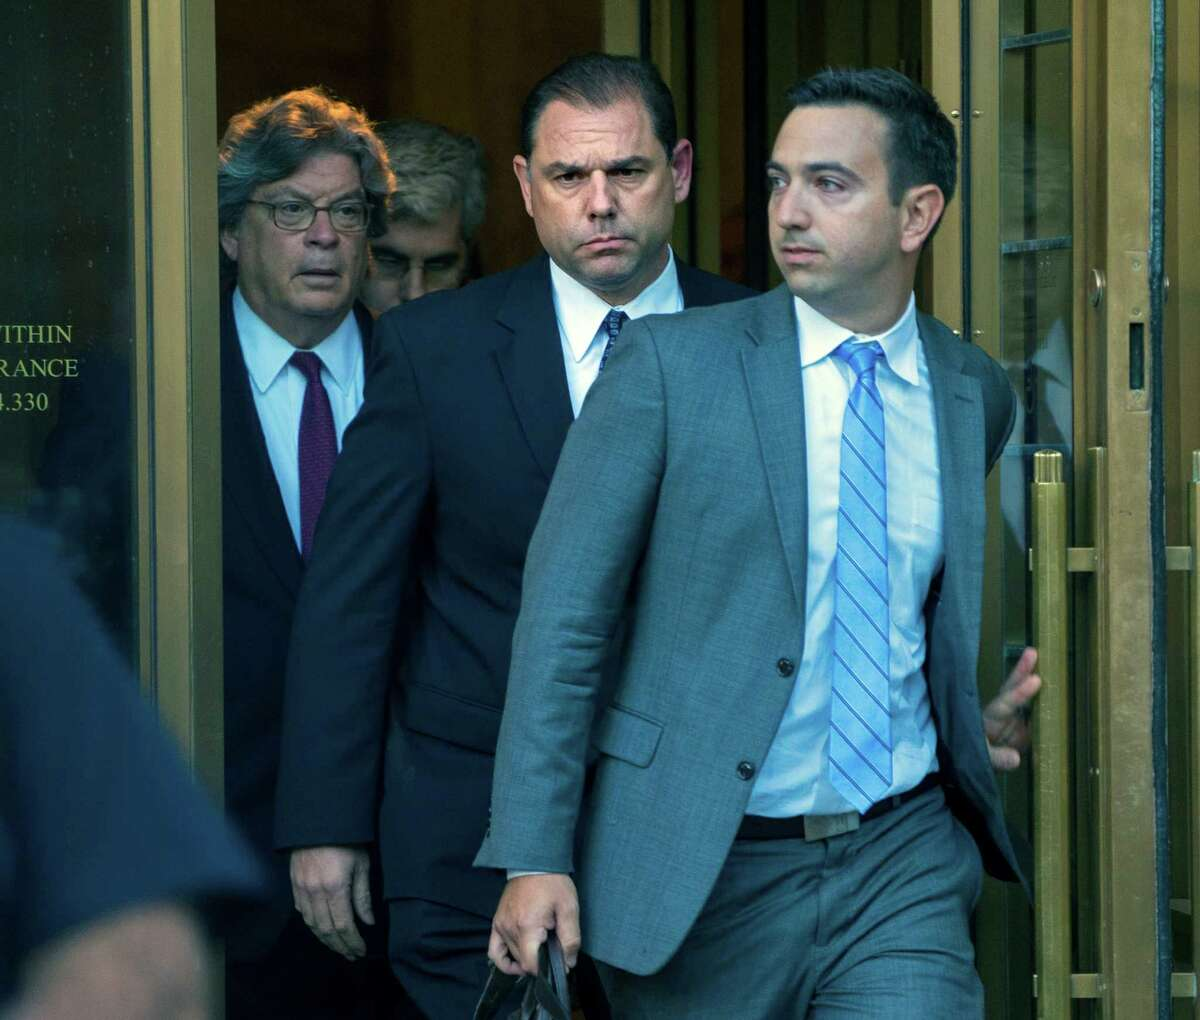 Joseph Percoco, center, the former gatekeeper to Gov. Andrew Cuomo, leaves federal court in New York Thursday, Sept. 22, 2016. Federal authorities accused Percoco of soliciting more than $300,000 in bribes from an energy company and a Syracuse developer. (AP Photo/Craig Ruttle) ORG XMIT: NYCR101